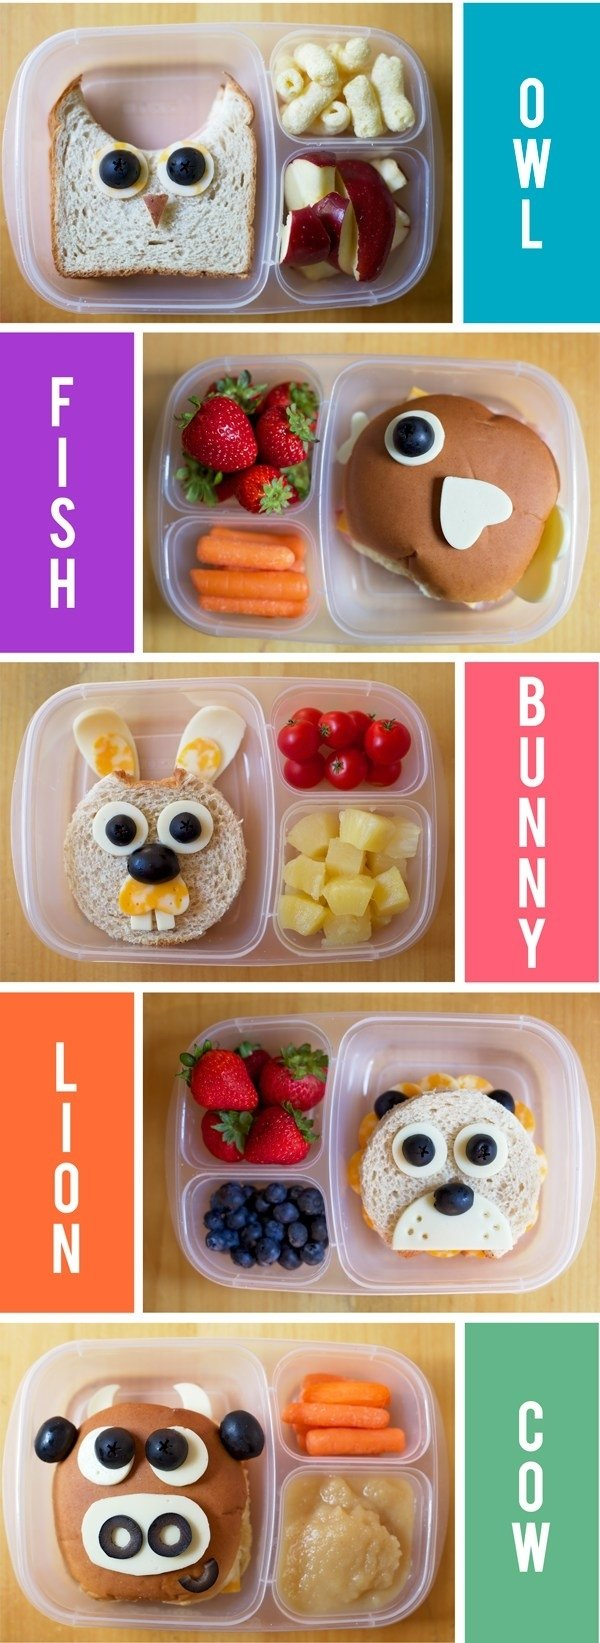 10 Amazing Snack Ideas For Kids School the best school lunch ideas for kids that are fun and easy 9 2020